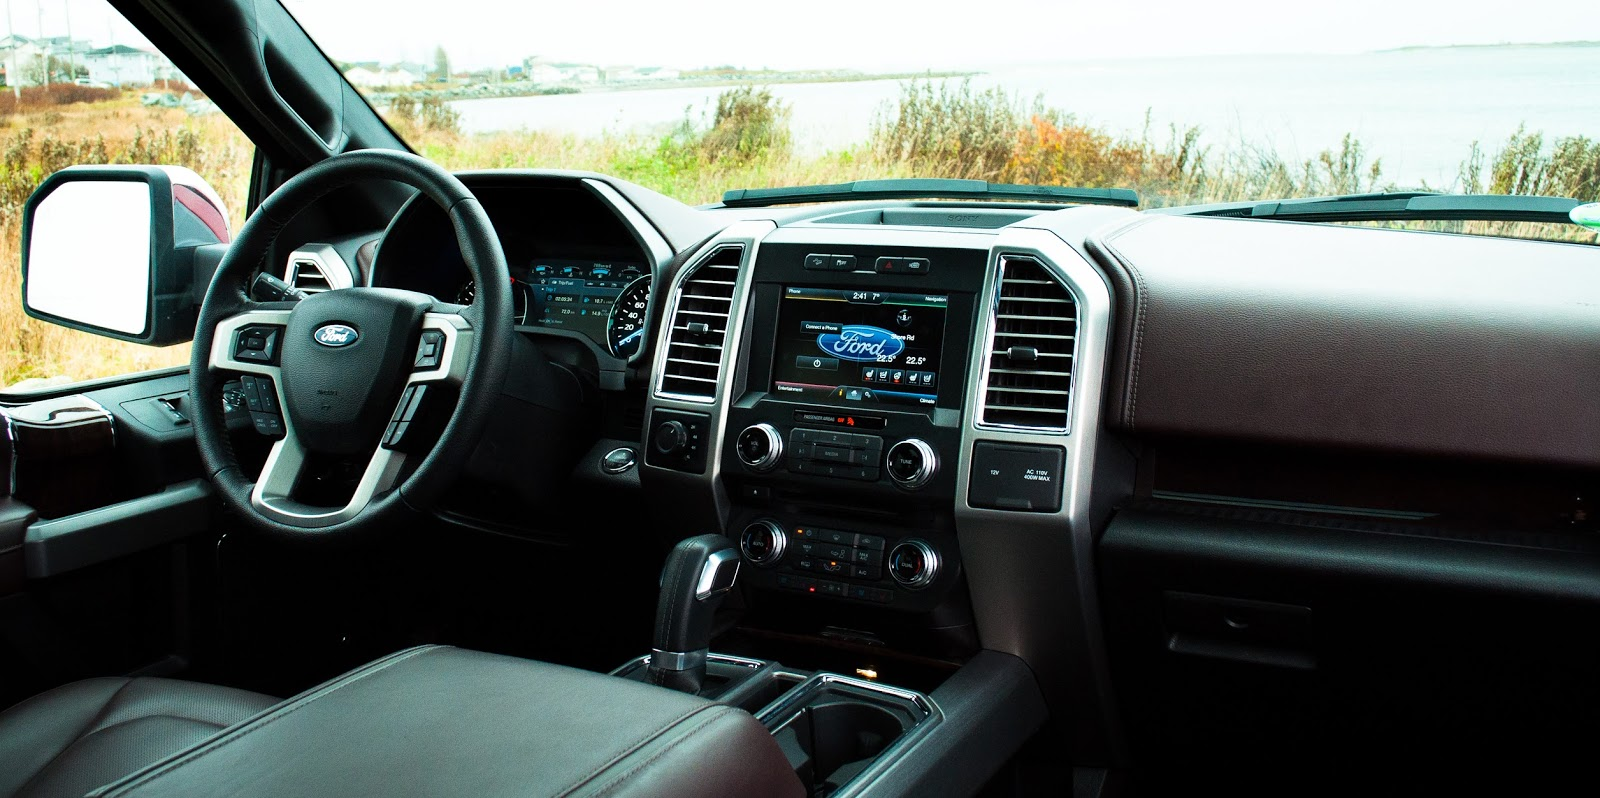 Ford F 150 Platinum Interior >> Review 2015 Ford F 150 Platinum Ecoboost Supercrew 4 4 A Truck S